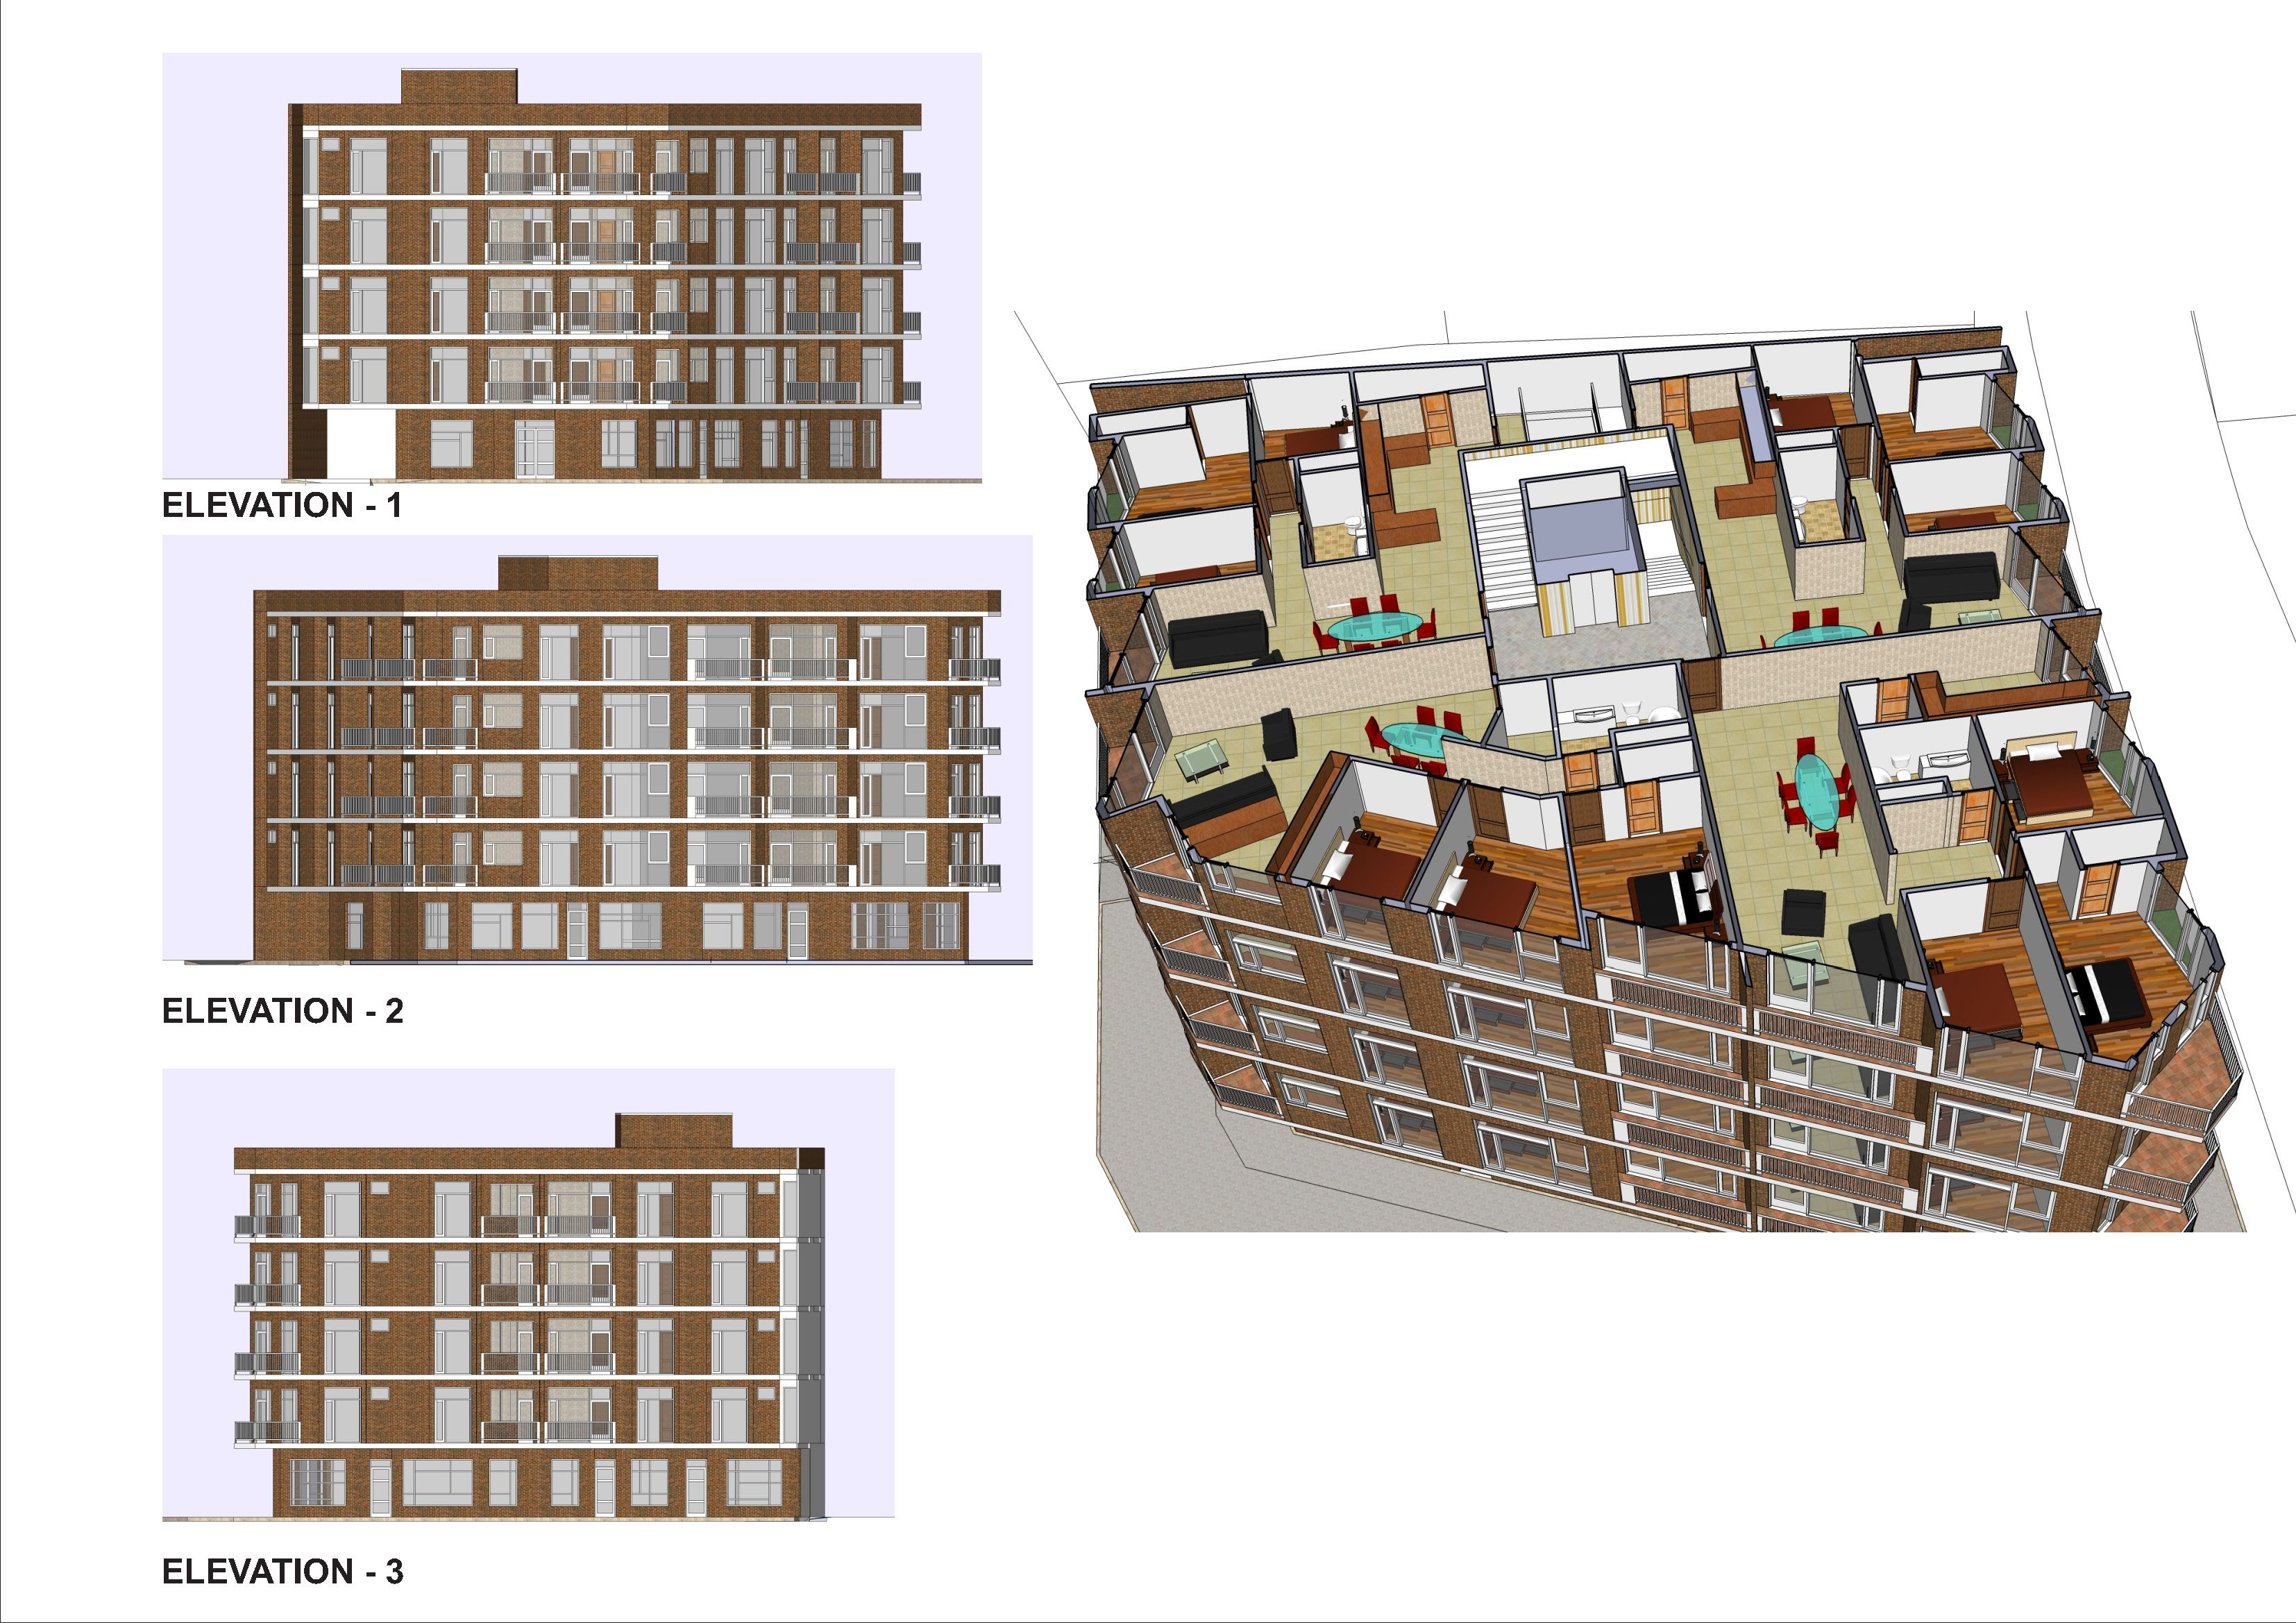 Apartment Design Blueprint apartment building plans | location: aksaray, turkey new